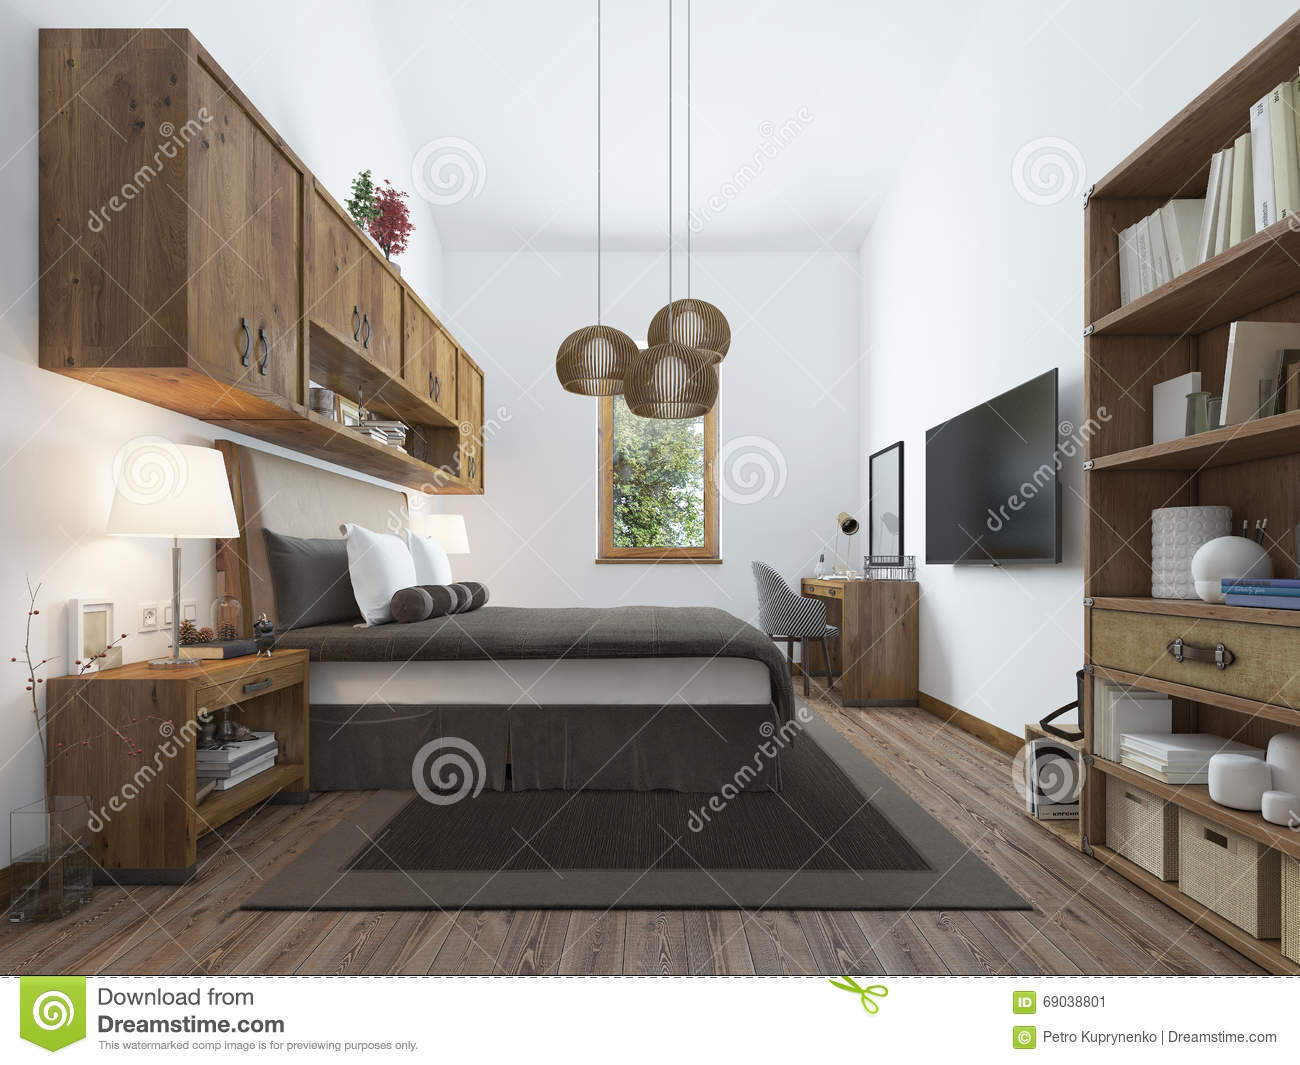 Large Bedroom In Modern Style With Elements Of A Rustic Loft Editorial Photo Image Of Interior Design 69038801